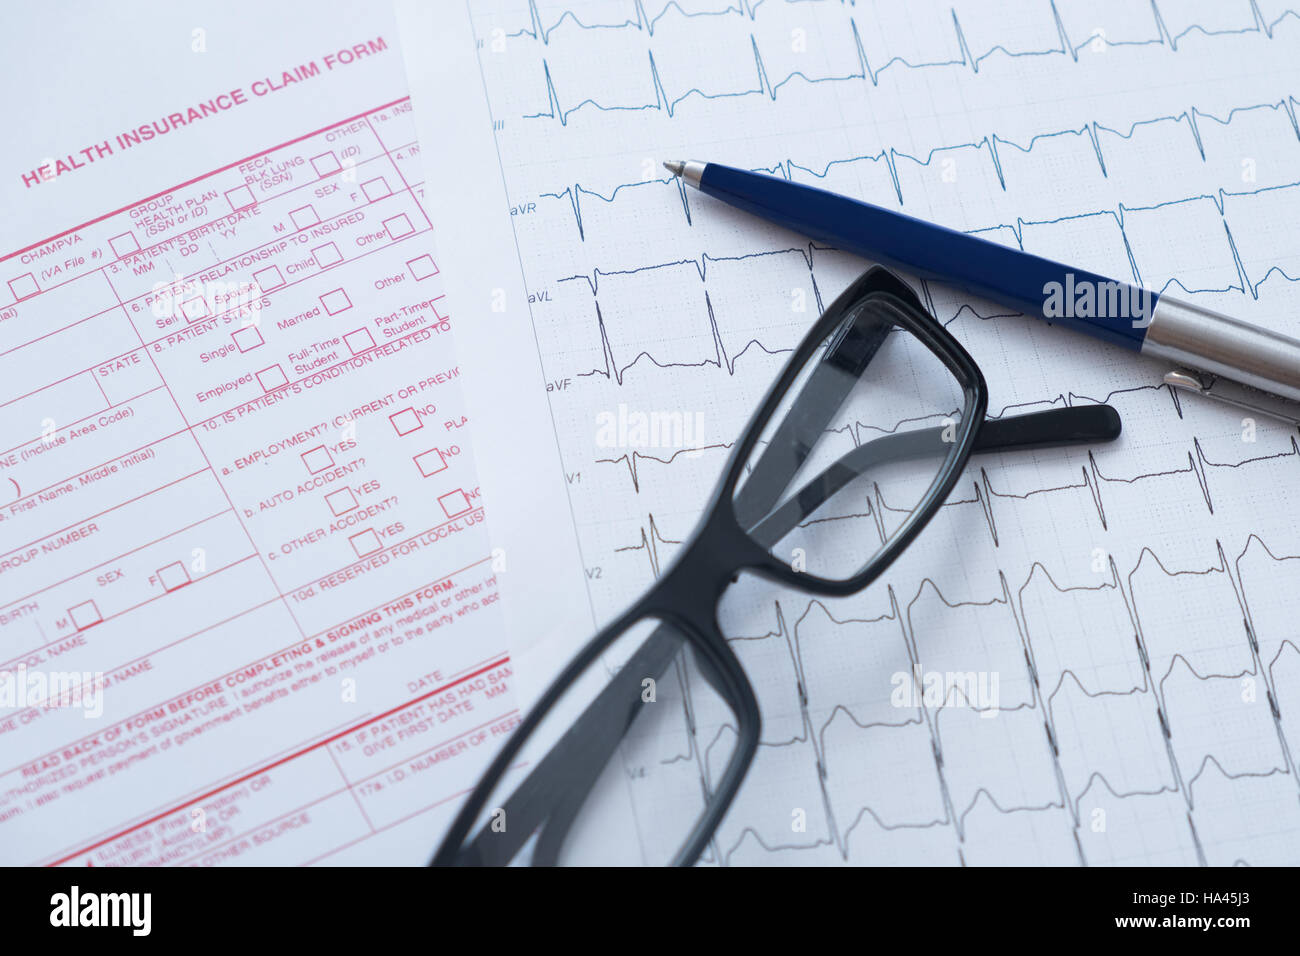 Health insurance claim form with pen and glasses - Stock Image